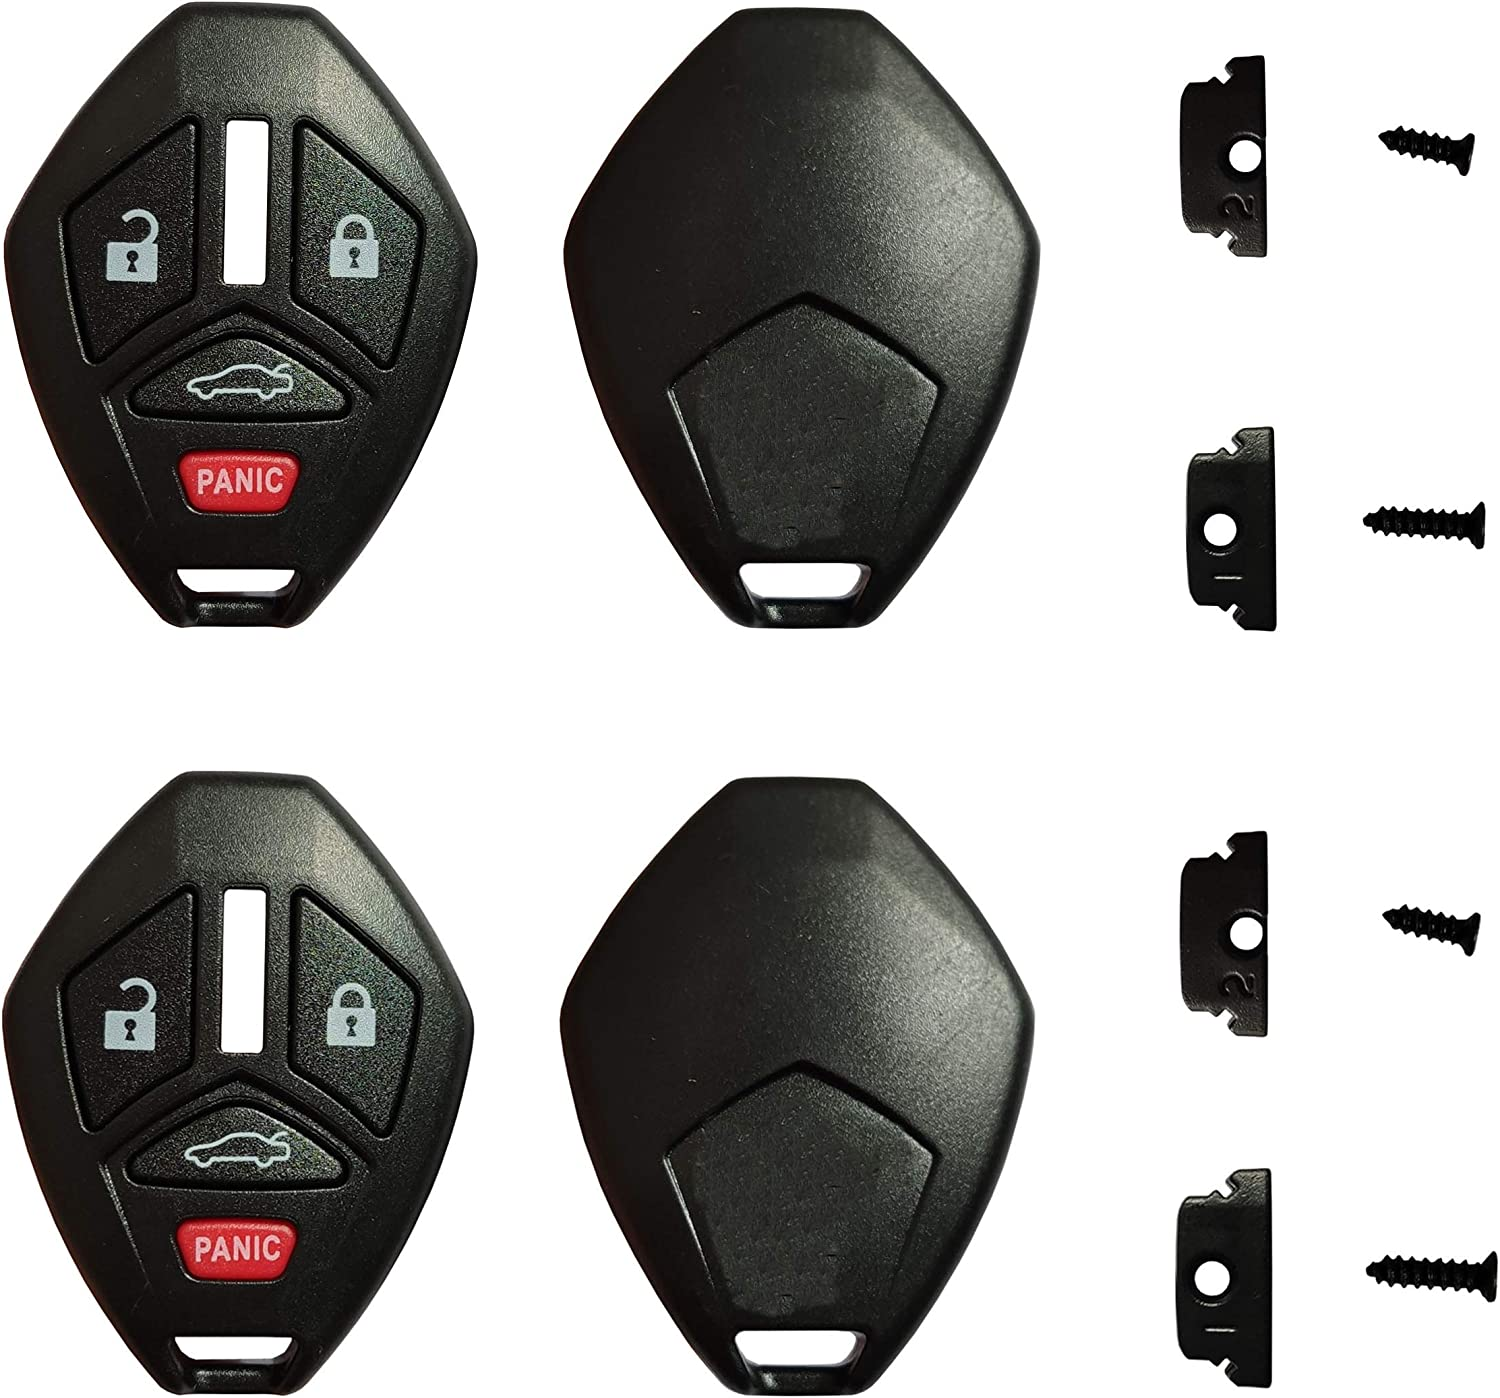 Key Shell Replacement Popular brand for Keyless New sales Entry Case with Fob Remote